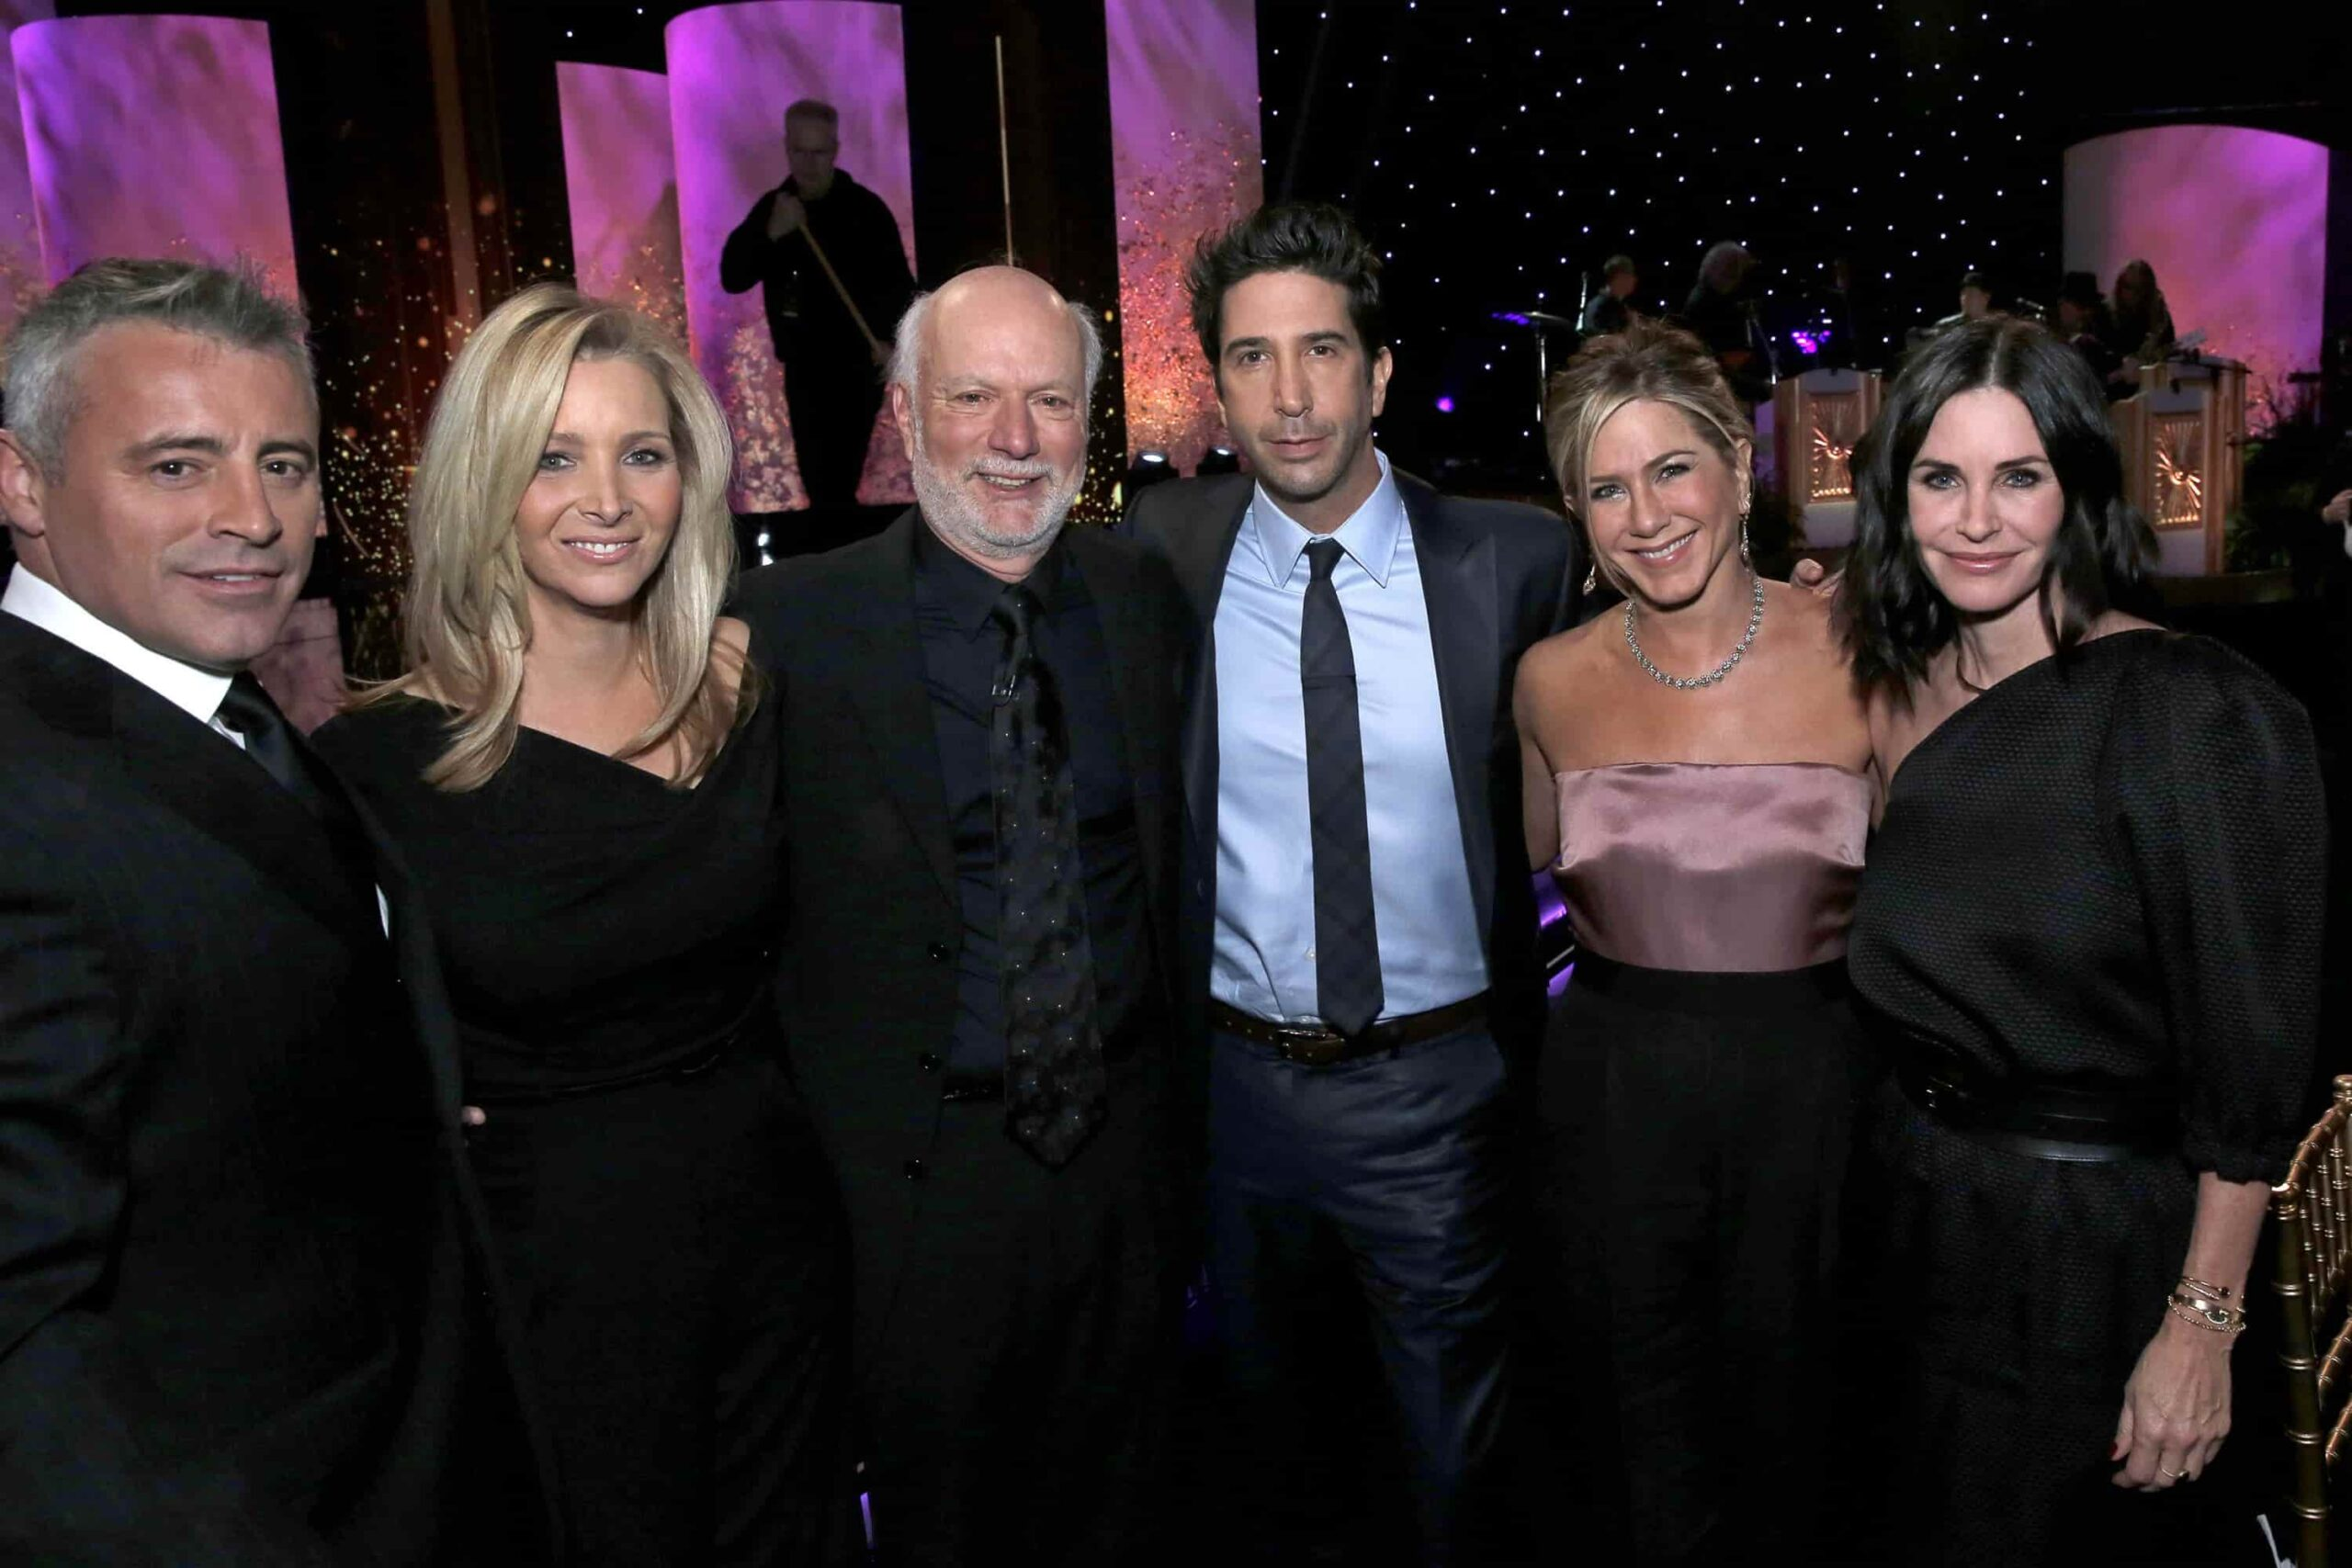 friends cast together even after the series